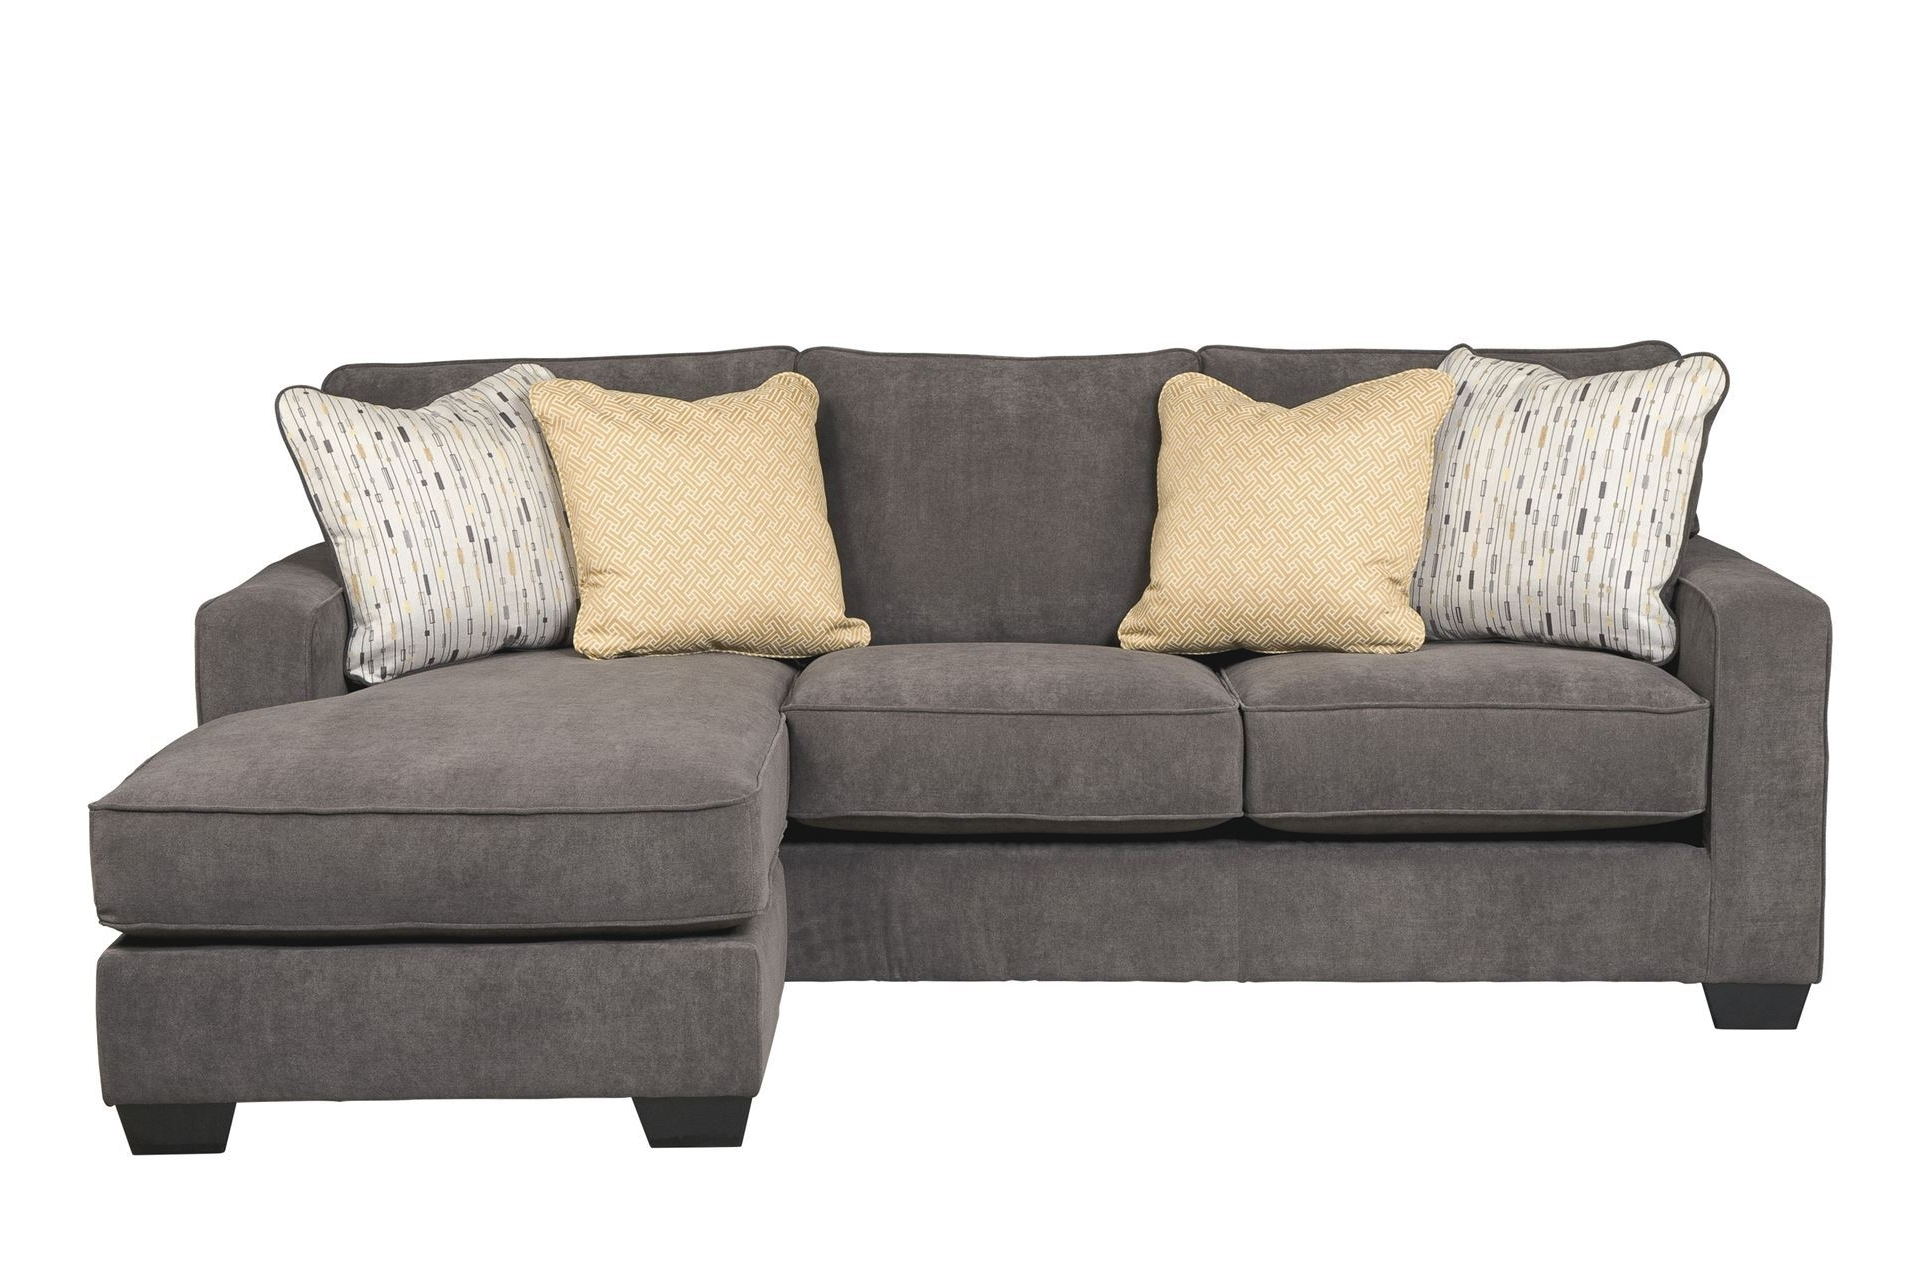 Gray Couches With Chaise Regarding Well Known Hodan Sofa/chaise (View 4 of 15)